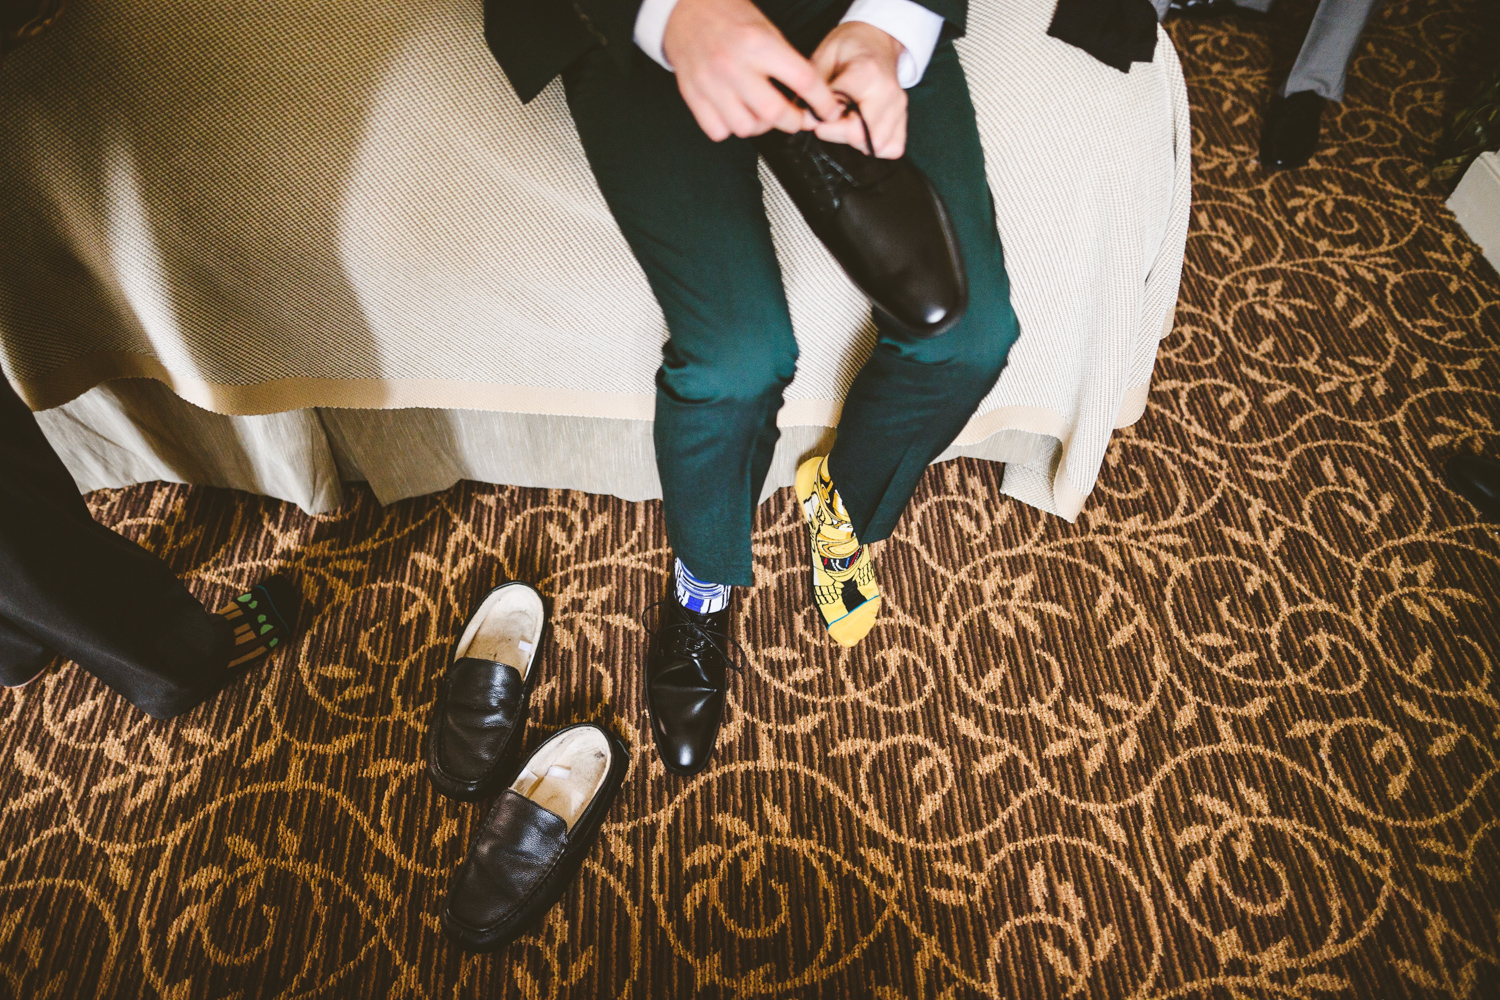 001 - groom putting on star wars themed socks.jpg